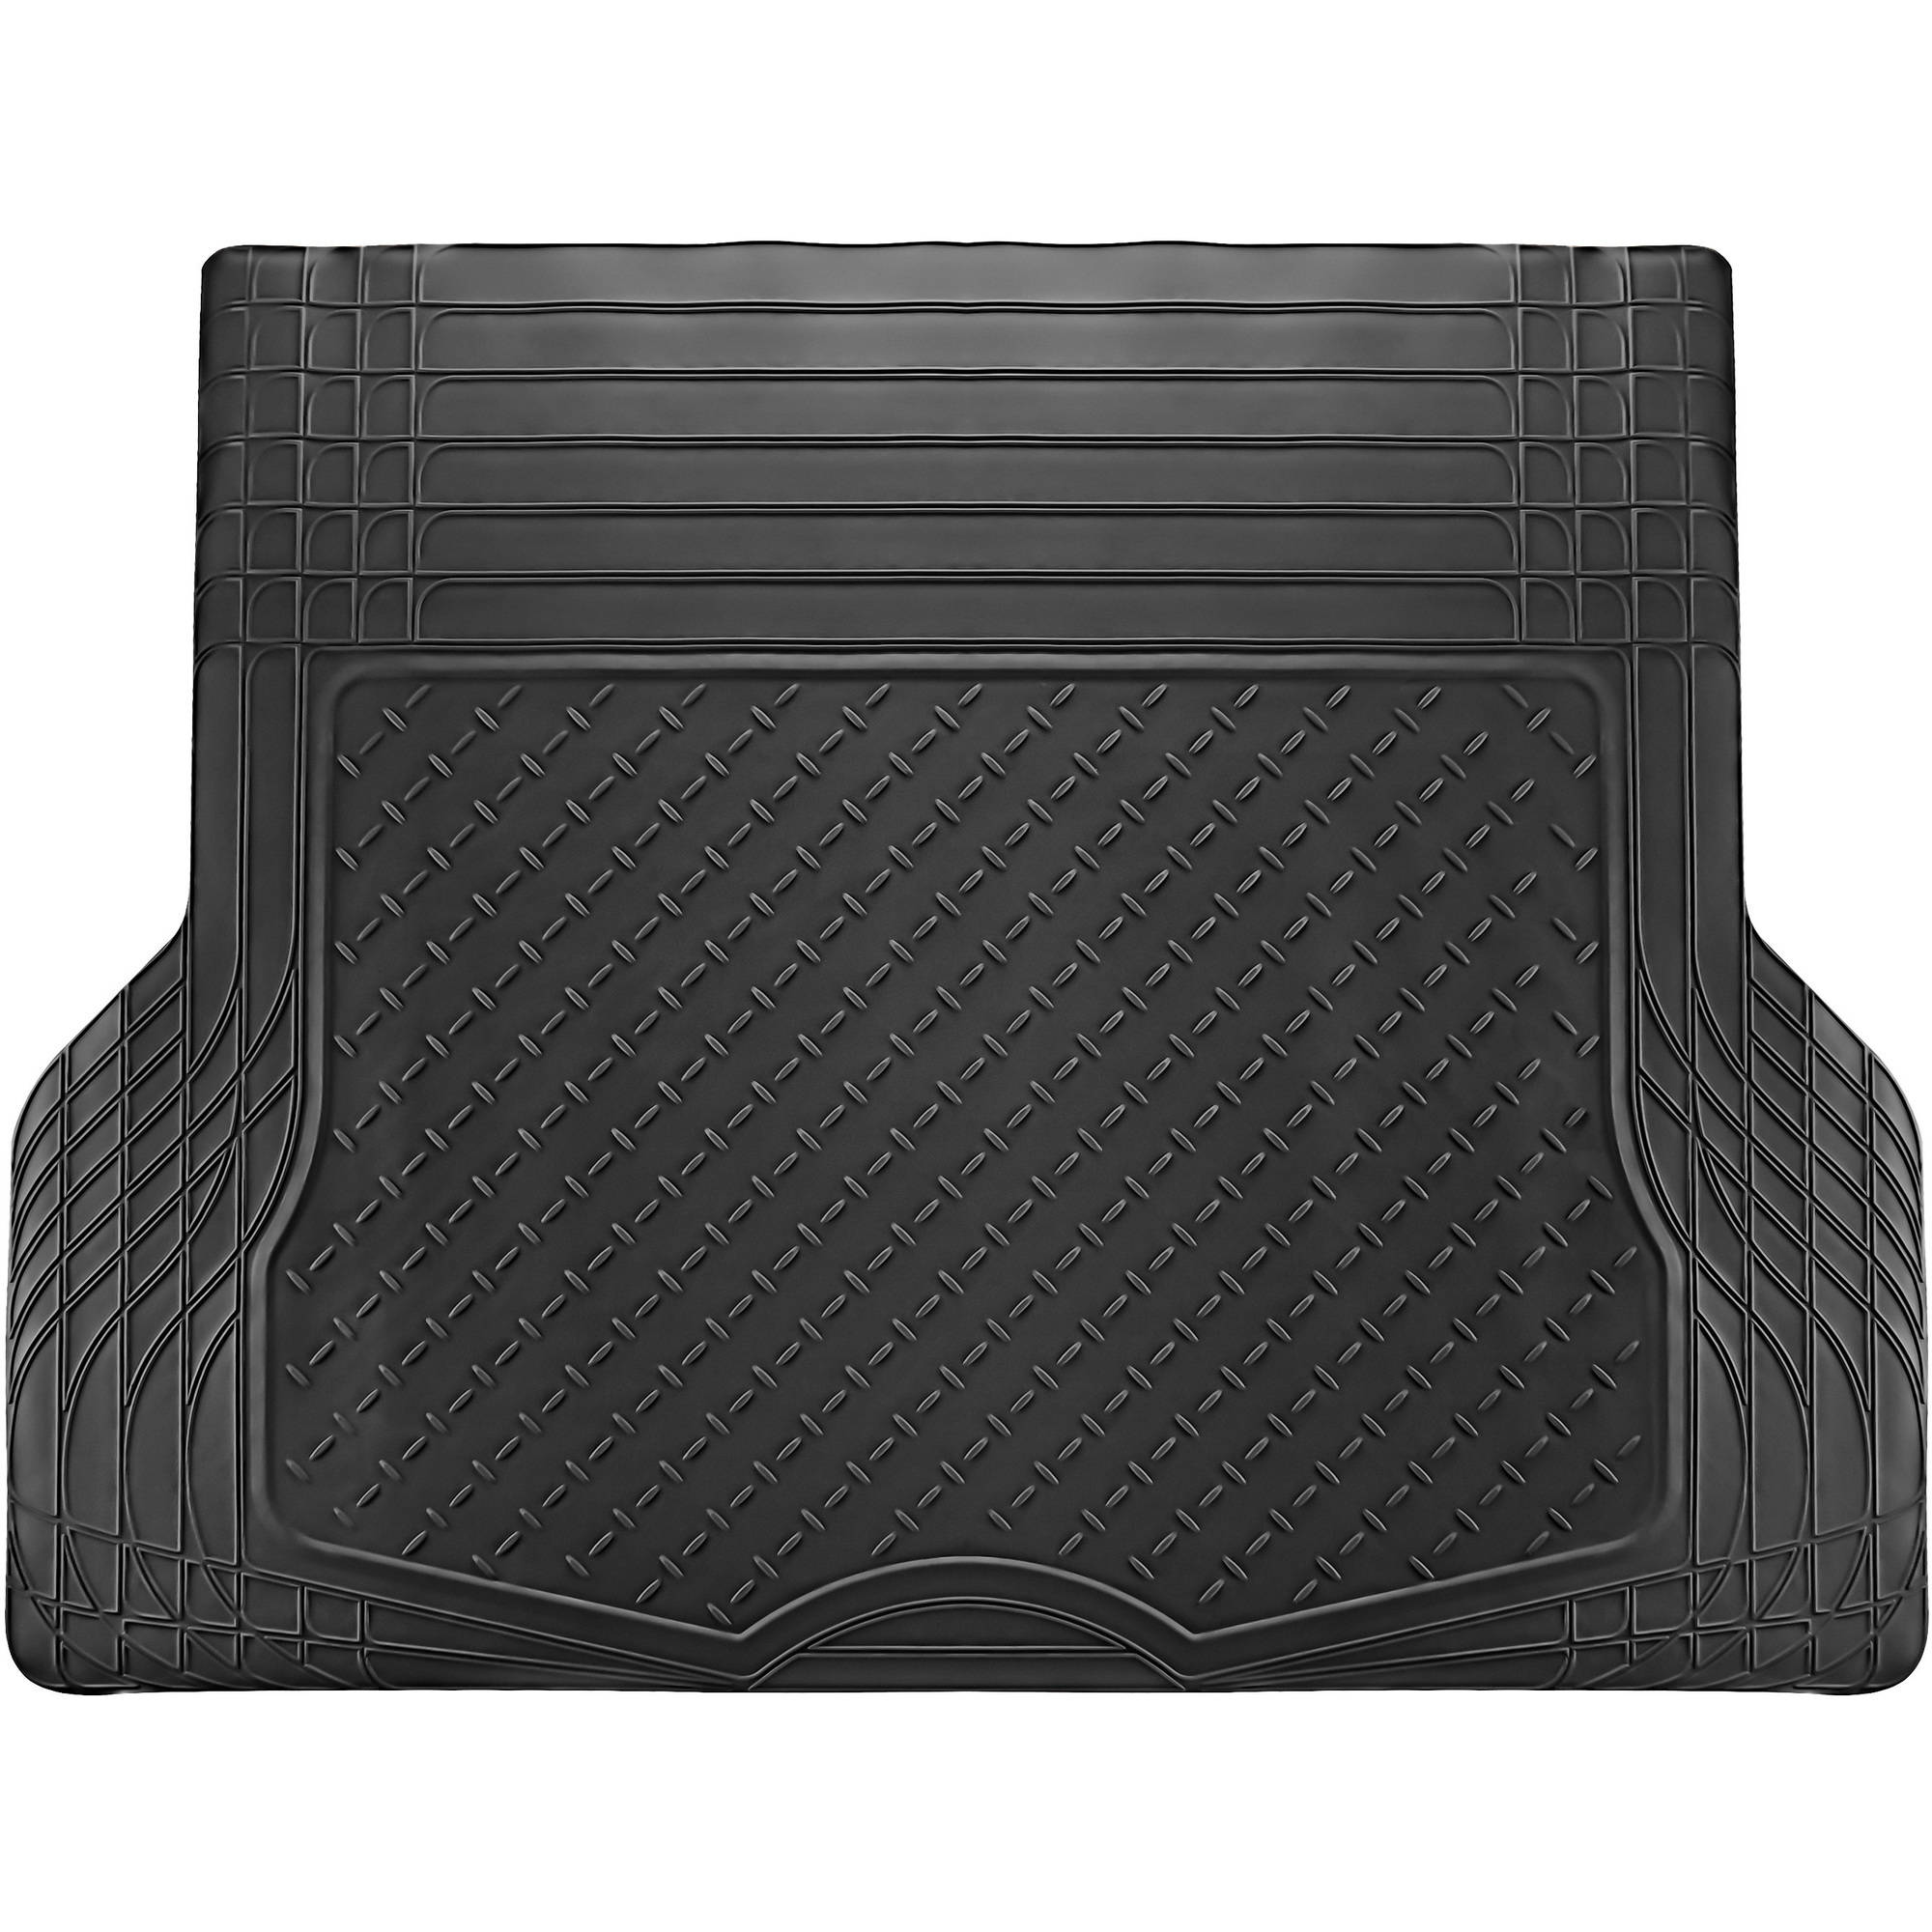 OxGord WeatherShield HD Heavy Duty Rubber Trunk Cargo Liner Floor Mat, Trim-to-Fit for Car, SUV, Van & Trucks, Black